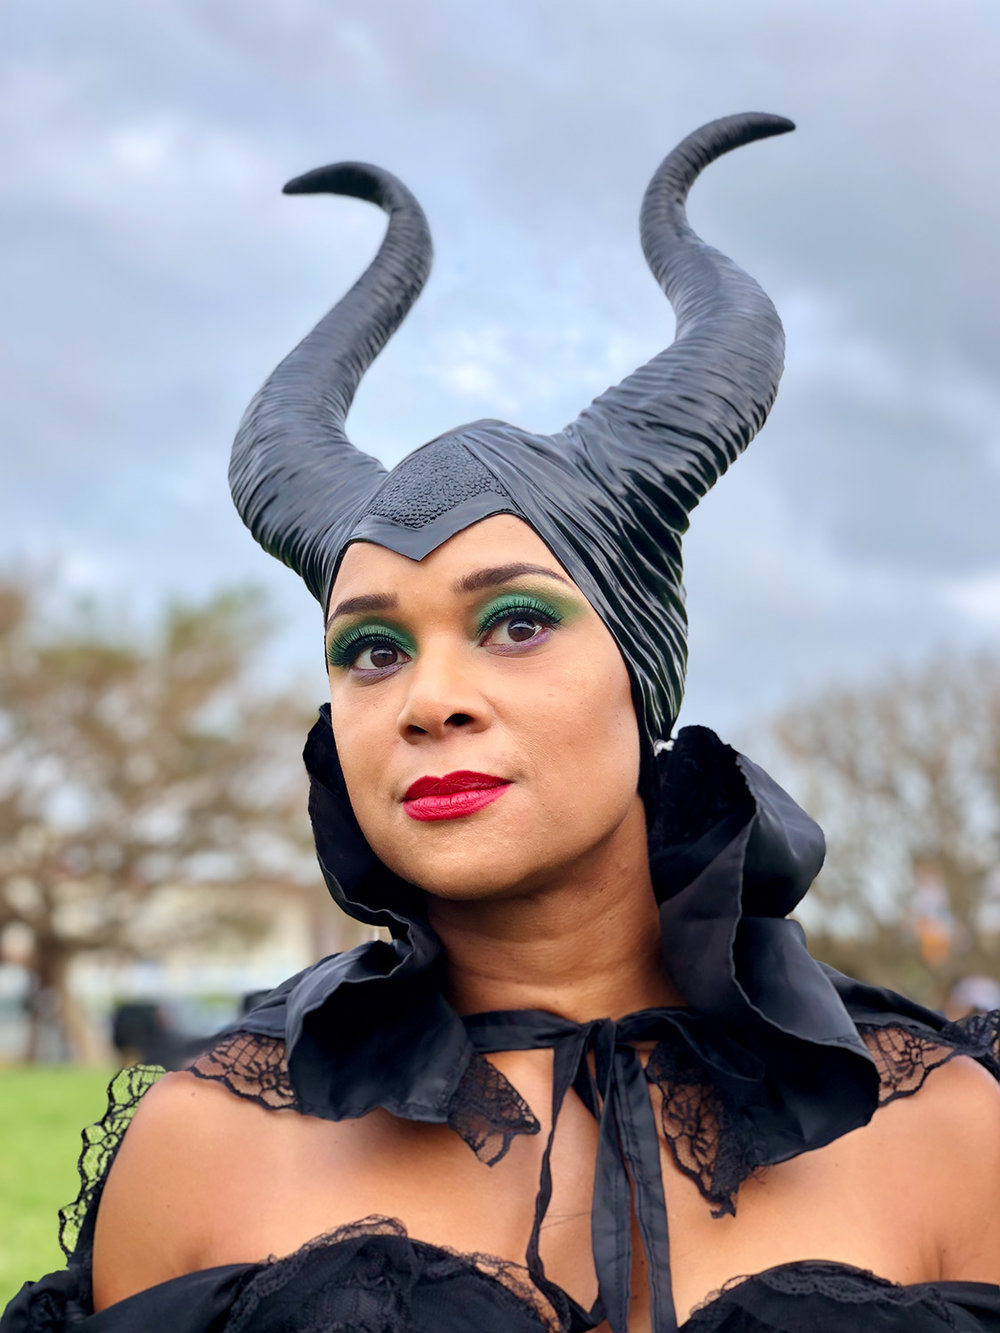 Maleficent #ShotOniPhone #ShotOniPhoneX using portrait mode.